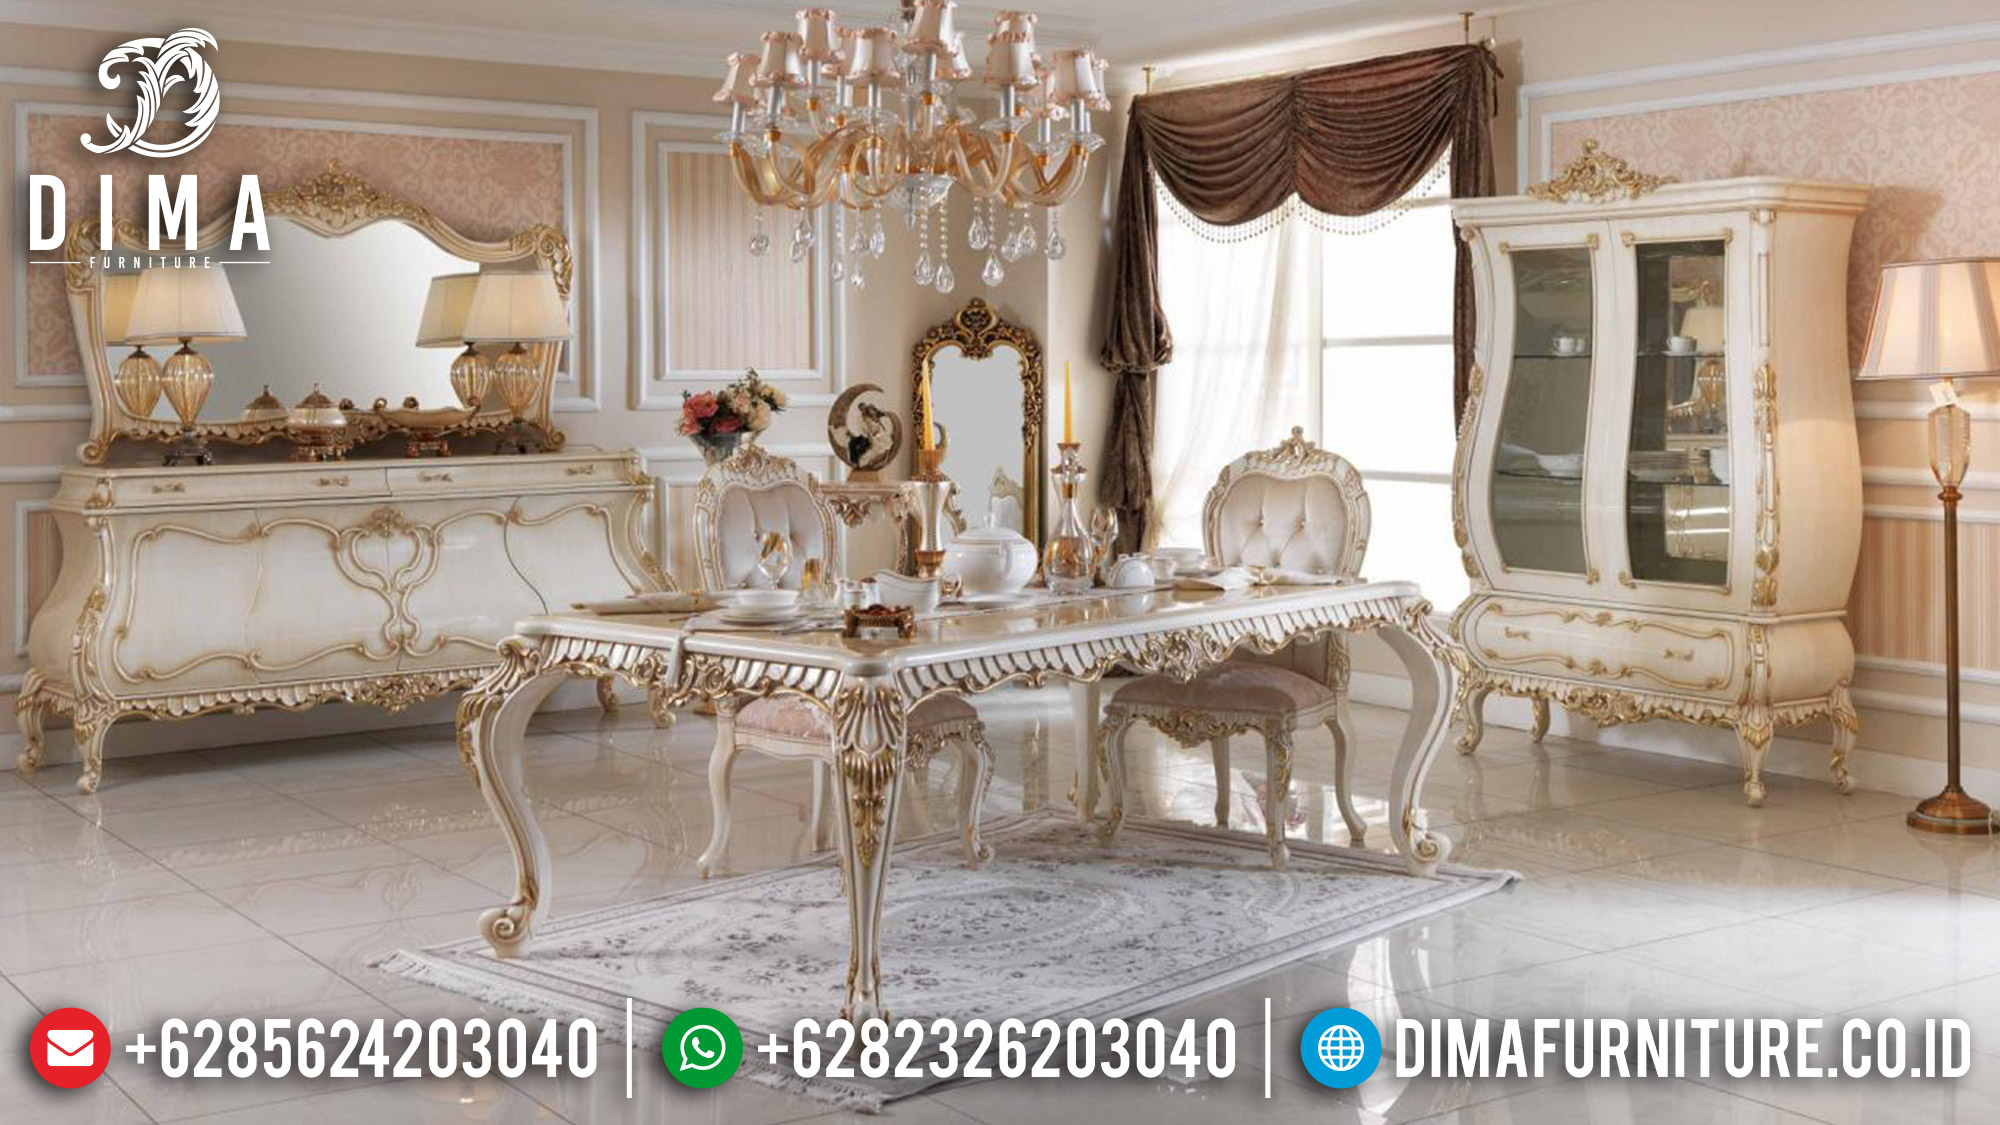 Available Meja Makan Mewah Ukiran Luxury Carving Mebel Jepara Terbaru MM-0875